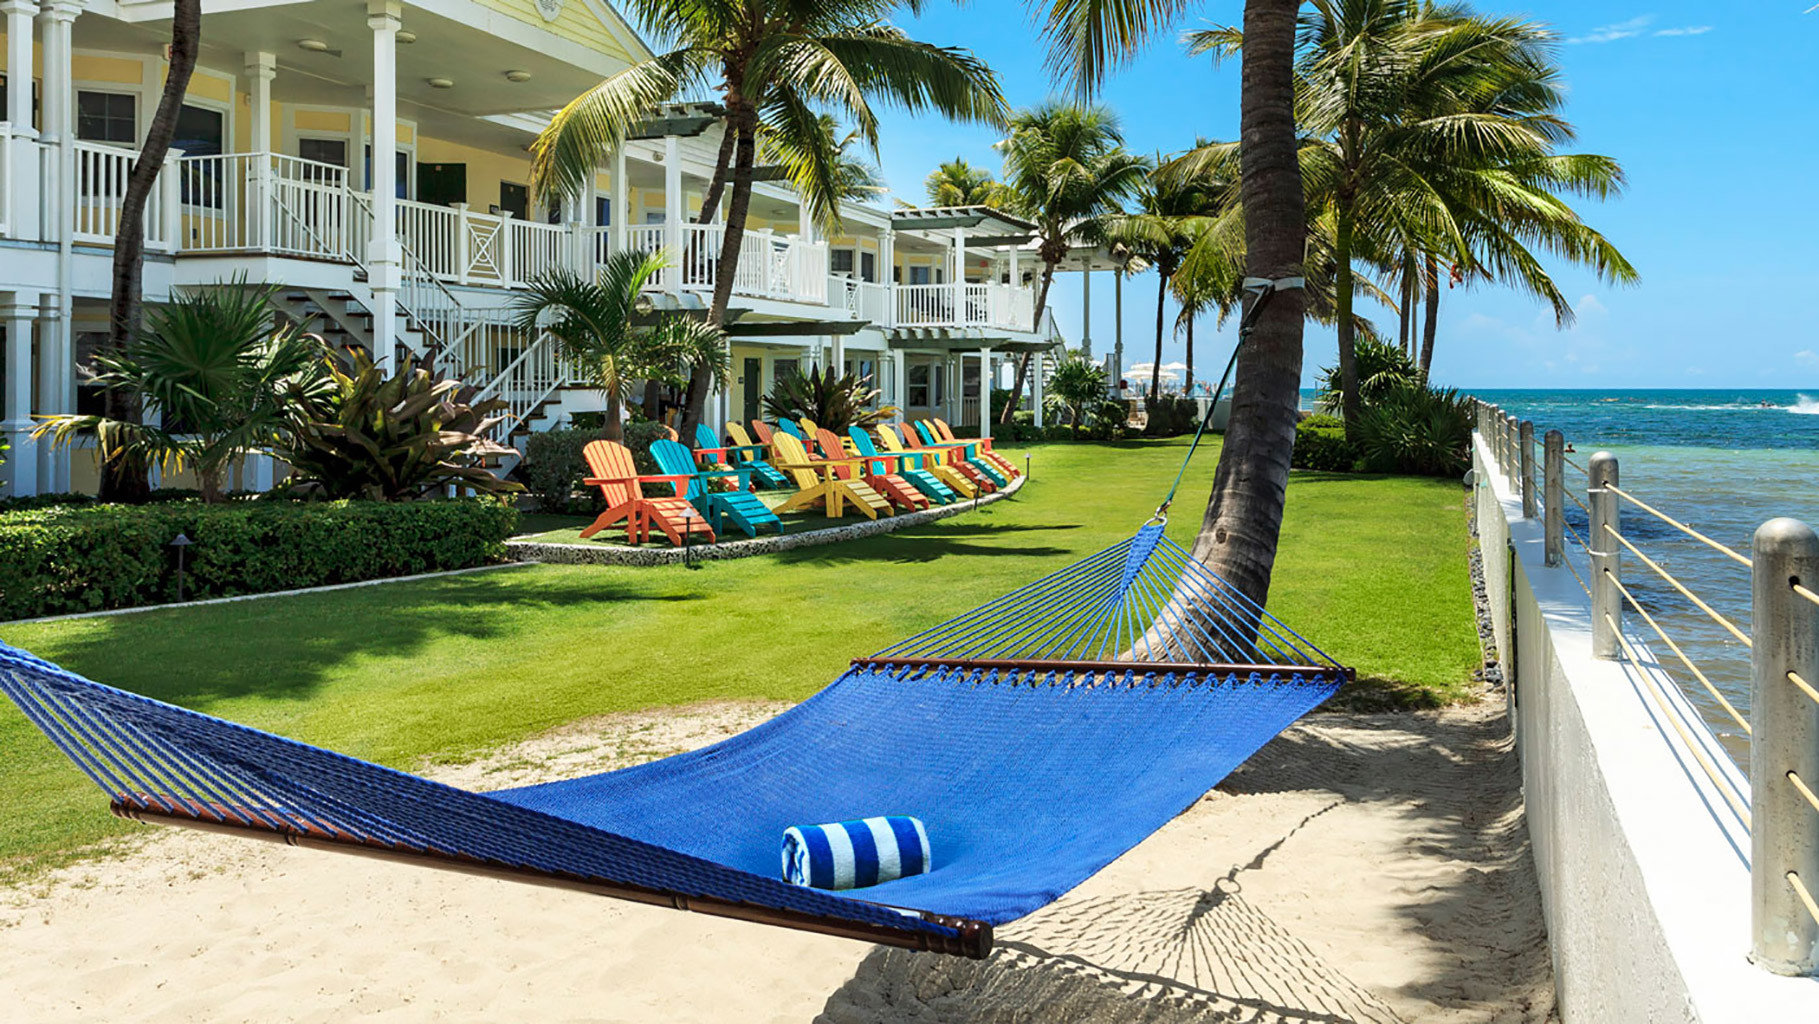 grass leisure swimming pool Pool Resort walkway backyard lawn park Villa palm